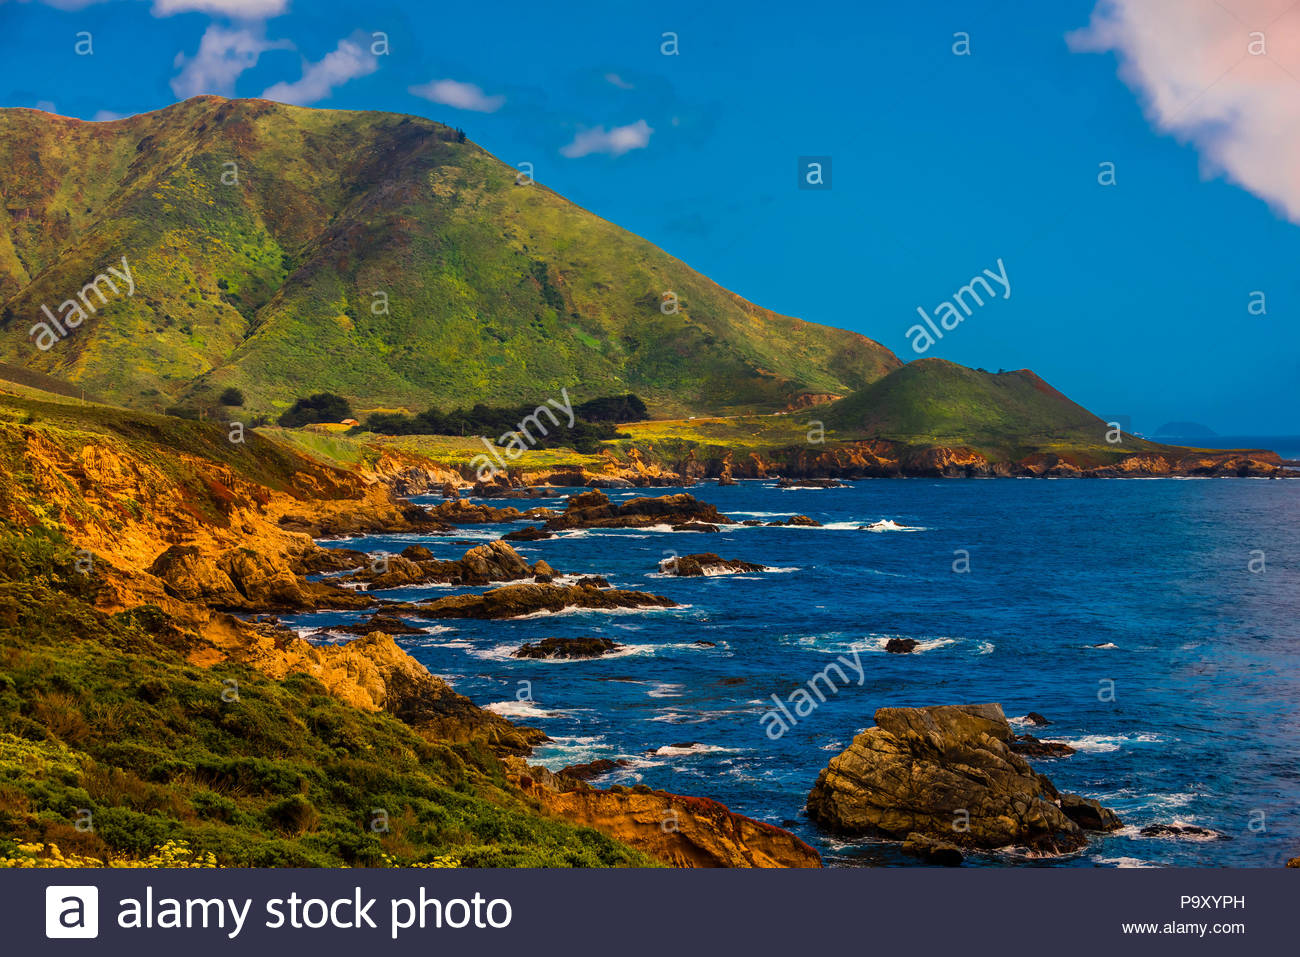 View along Highway One on the Big Sur coast between Carmel Highlands and Big Sur, Monterey County, California USA. - Stock Image